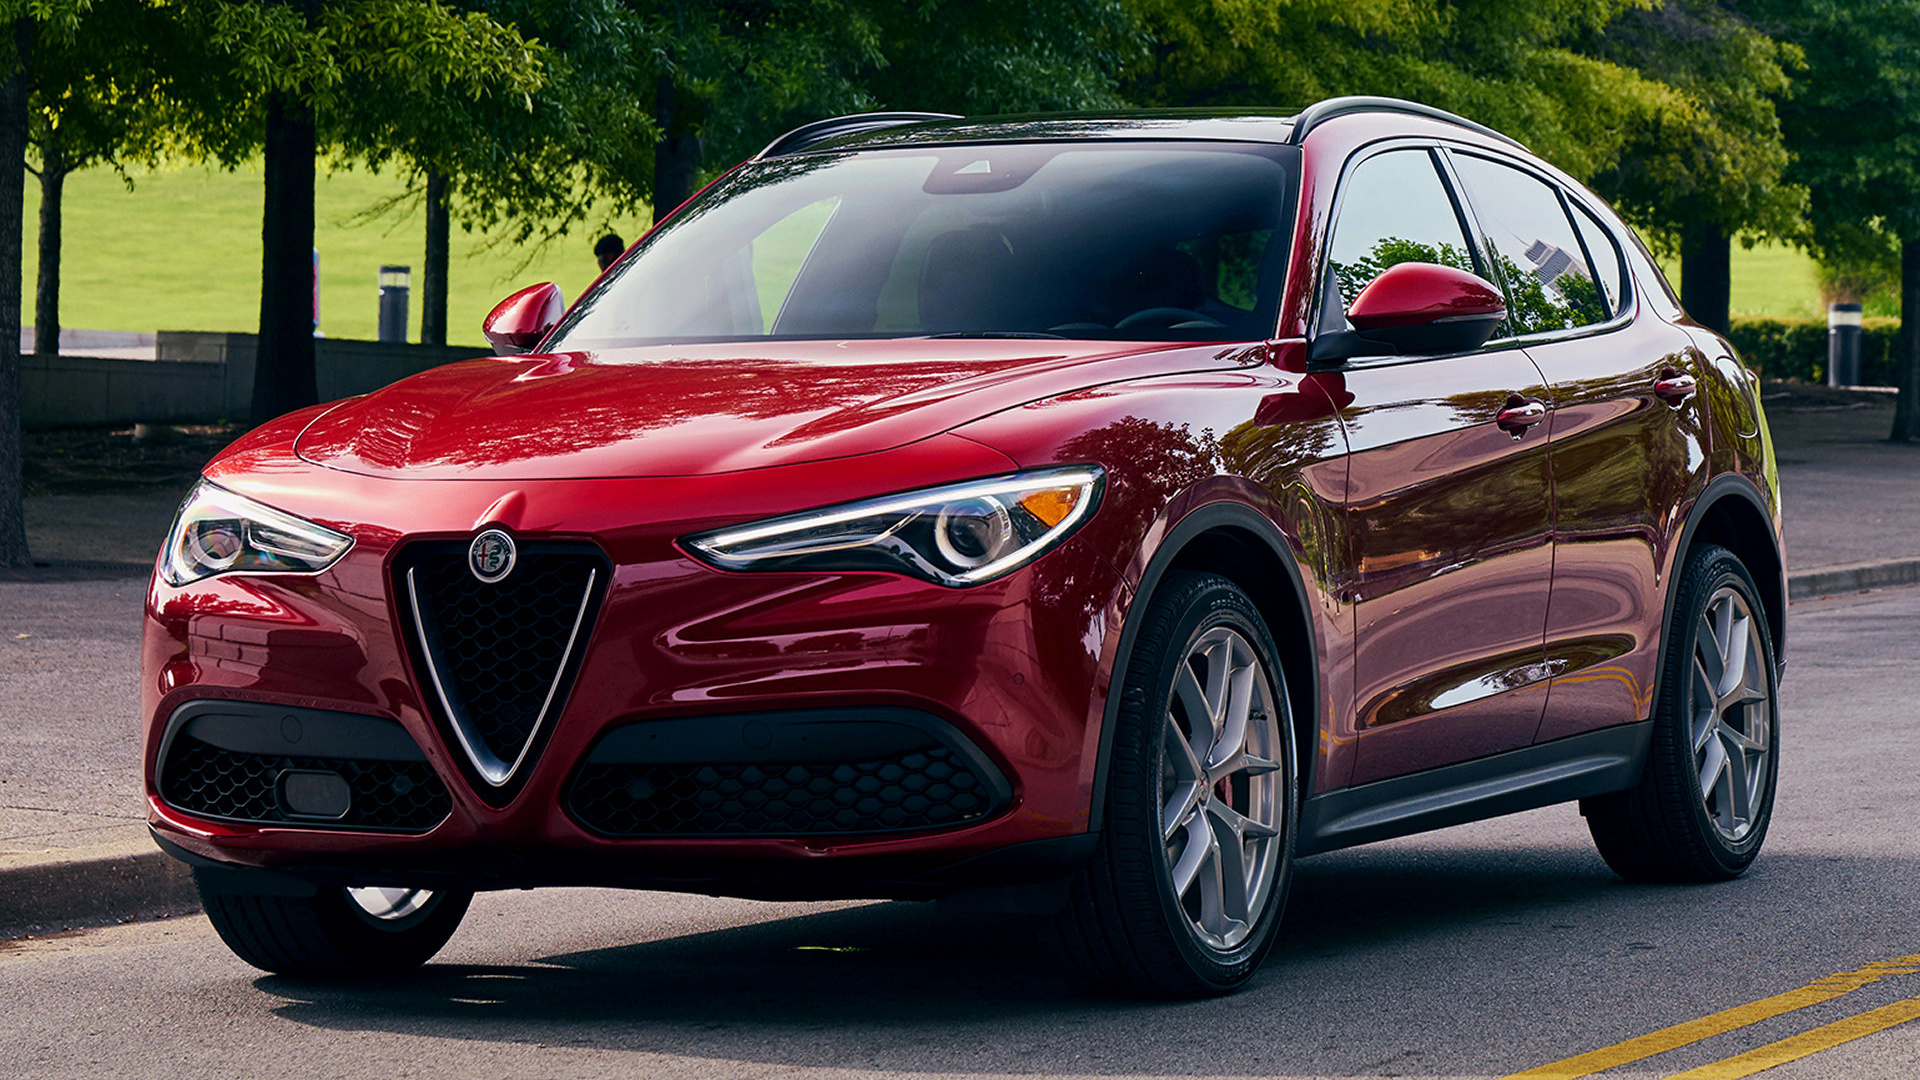 alfa romeo stelvio 2018 us wallpapers and hd images car pixel. Black Bedroom Furniture Sets. Home Design Ideas